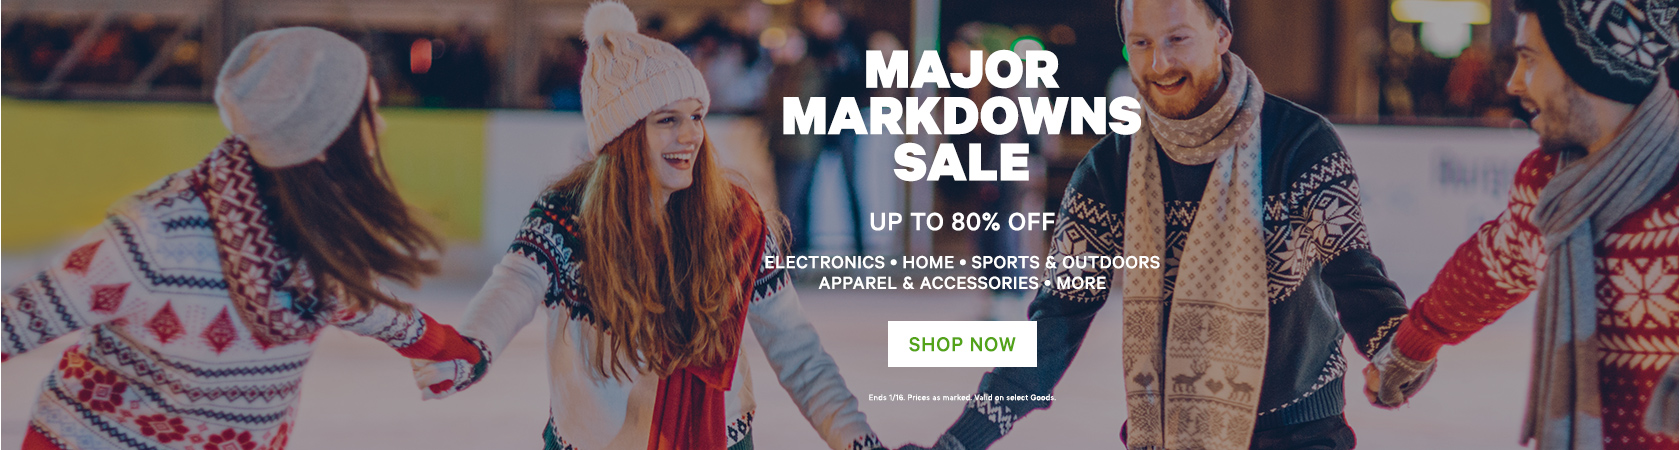 Major Markdowns